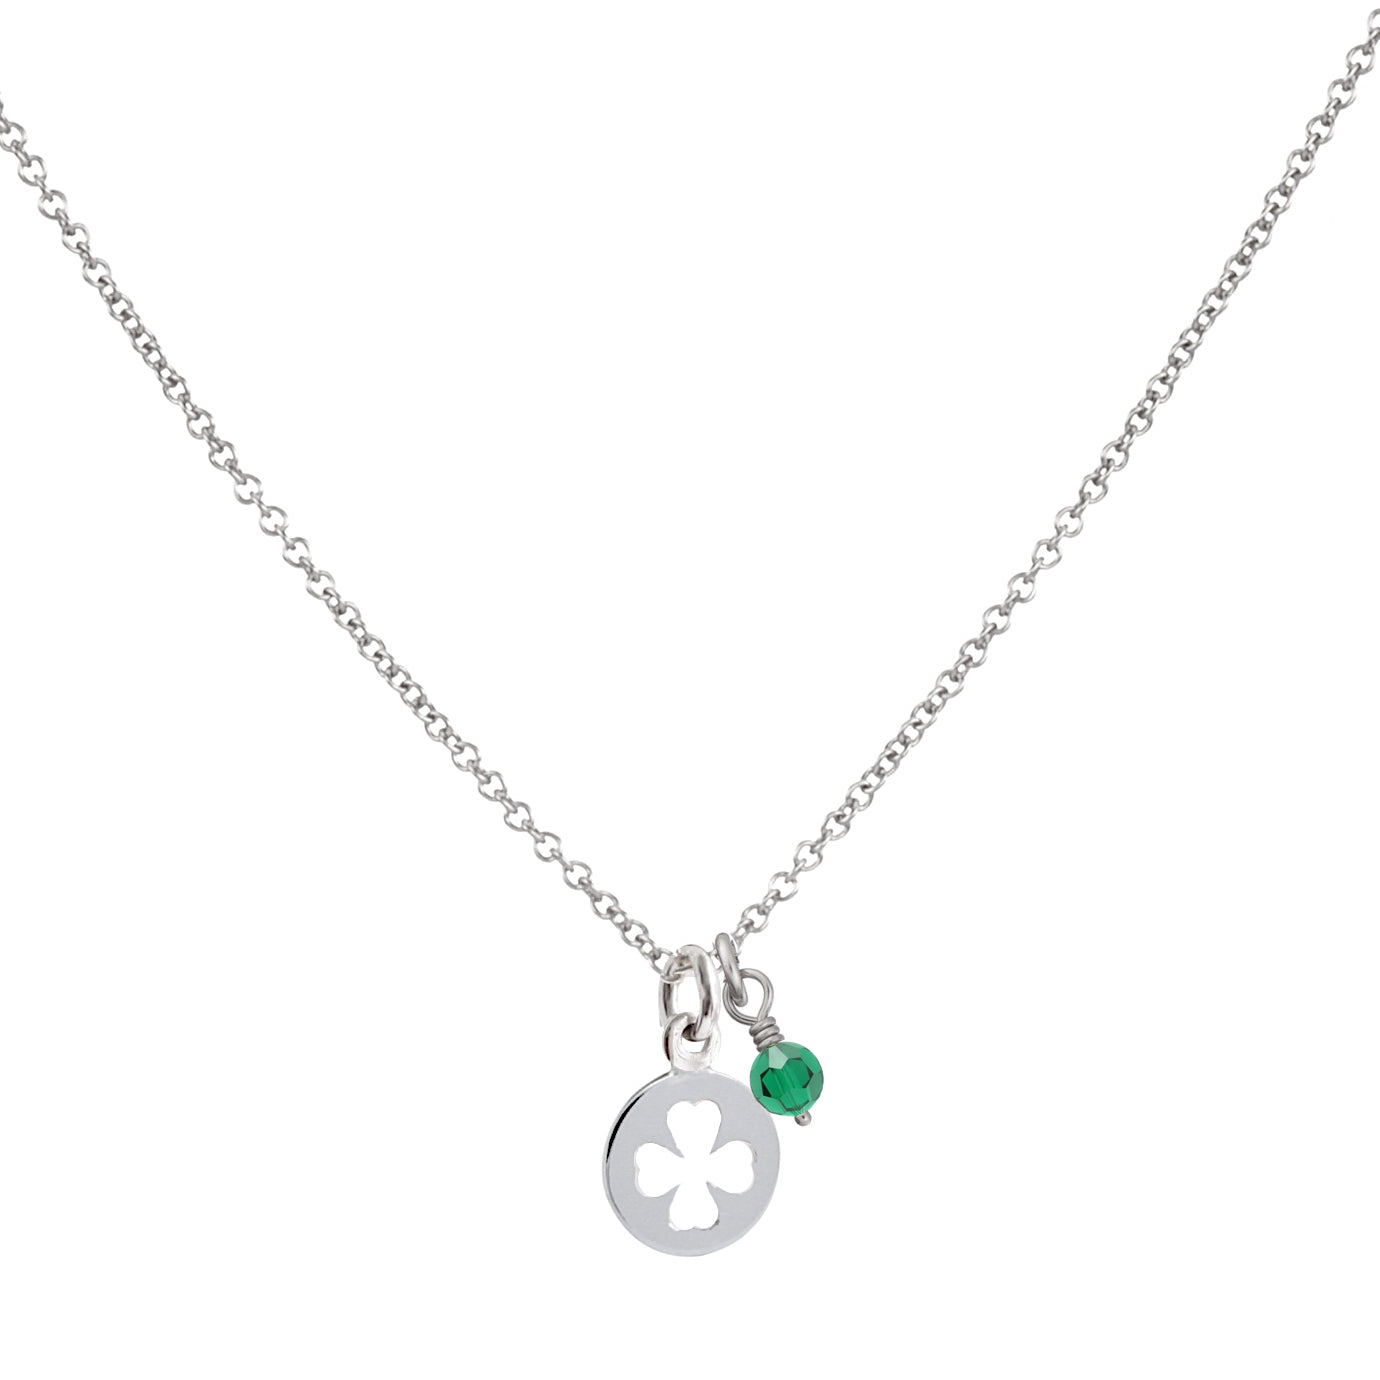 10K Gold Lucky Charm Clover Cutout Disc Necklace by JEWLR